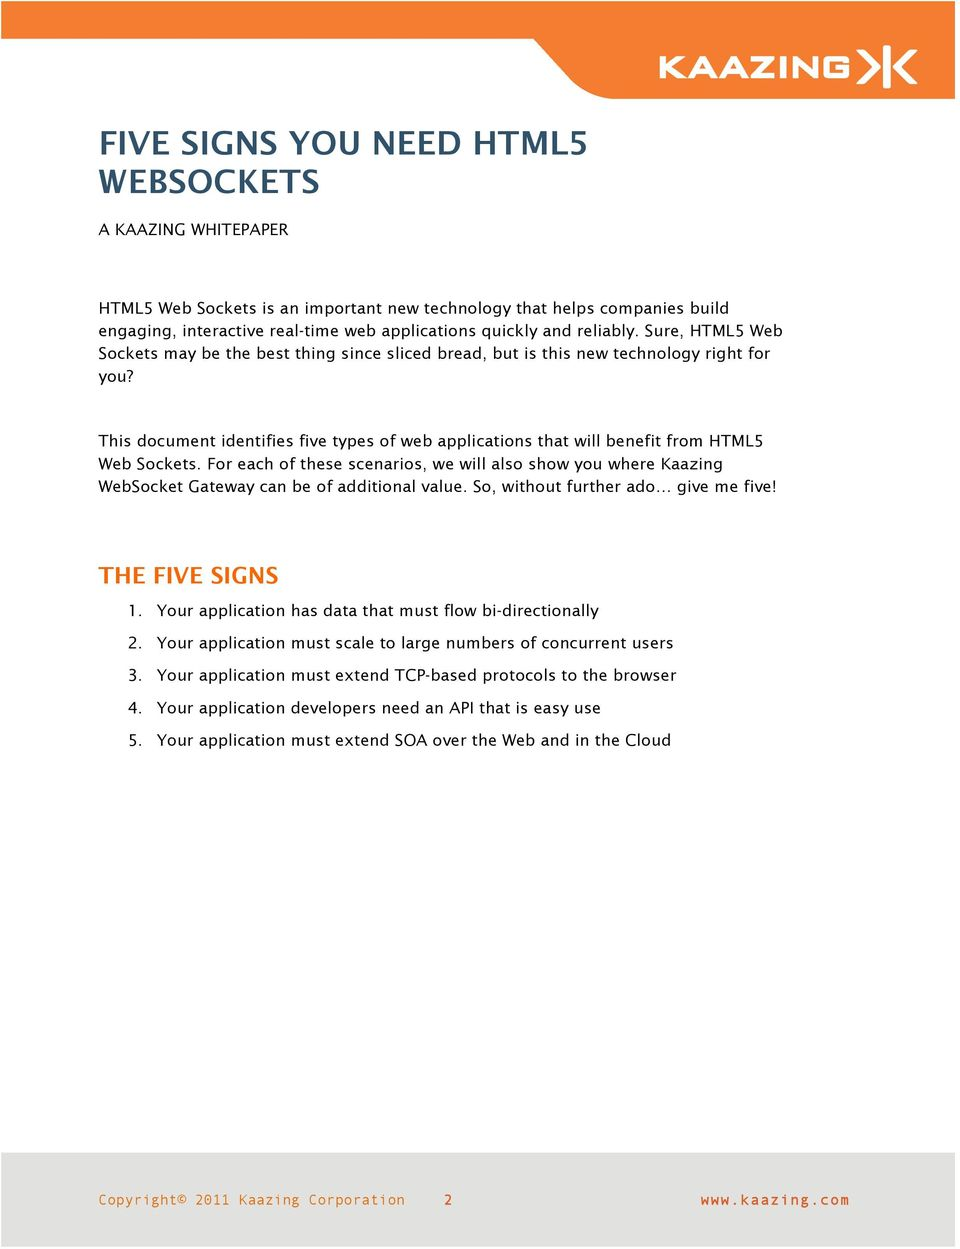 This document identifies five types of web applications that will benefit from HTML5 Web Sockets.